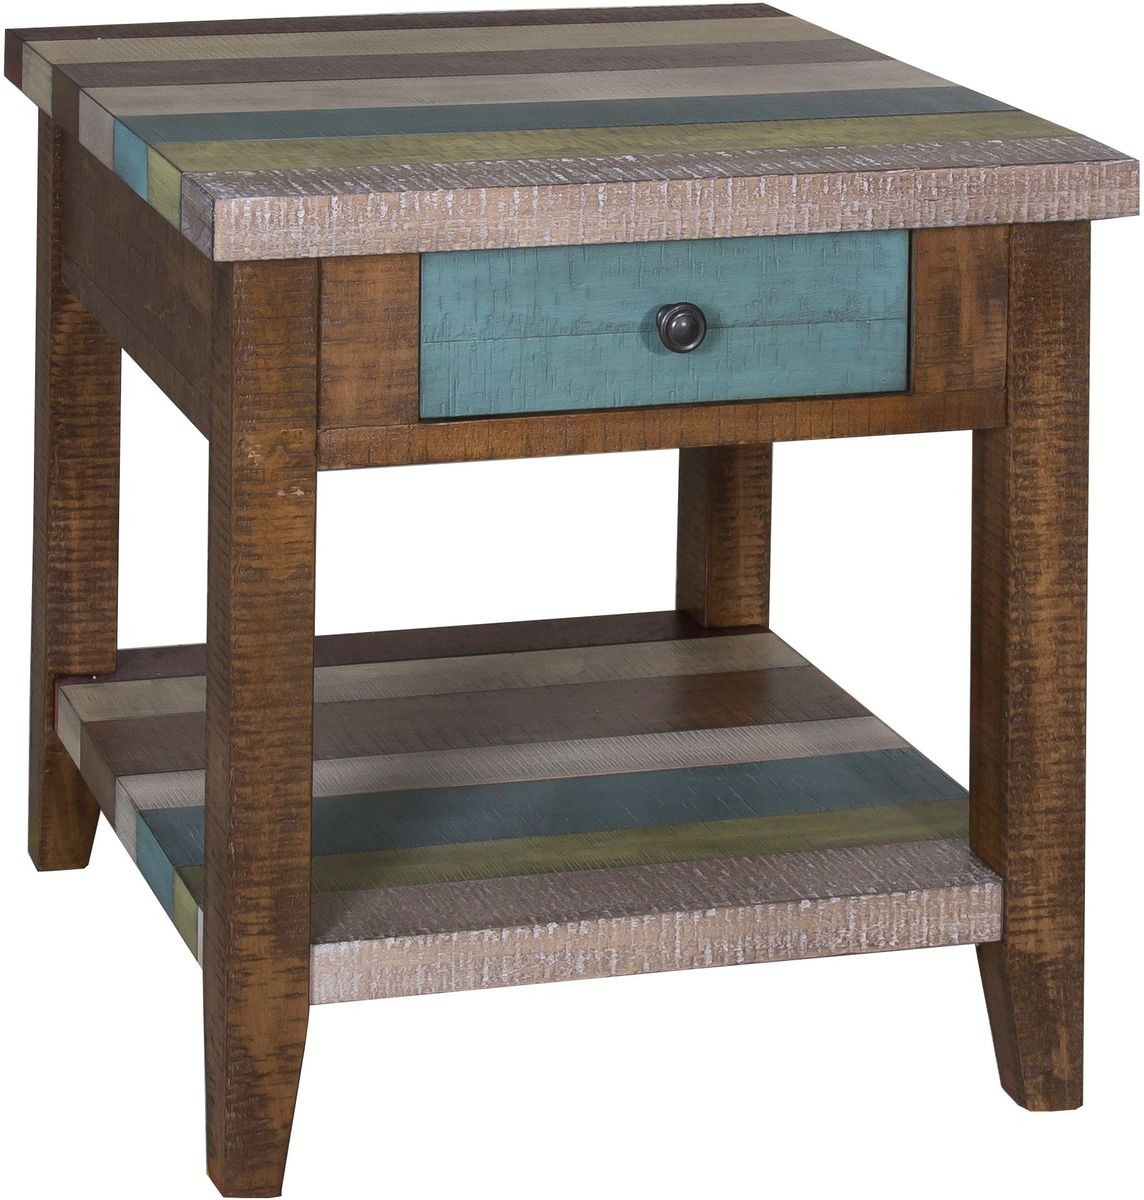 liberty furniture boho loft end table rustic brown tables farm style bar height legs designer nightstands matching side contemporary riverside sierra round coffee color rug with